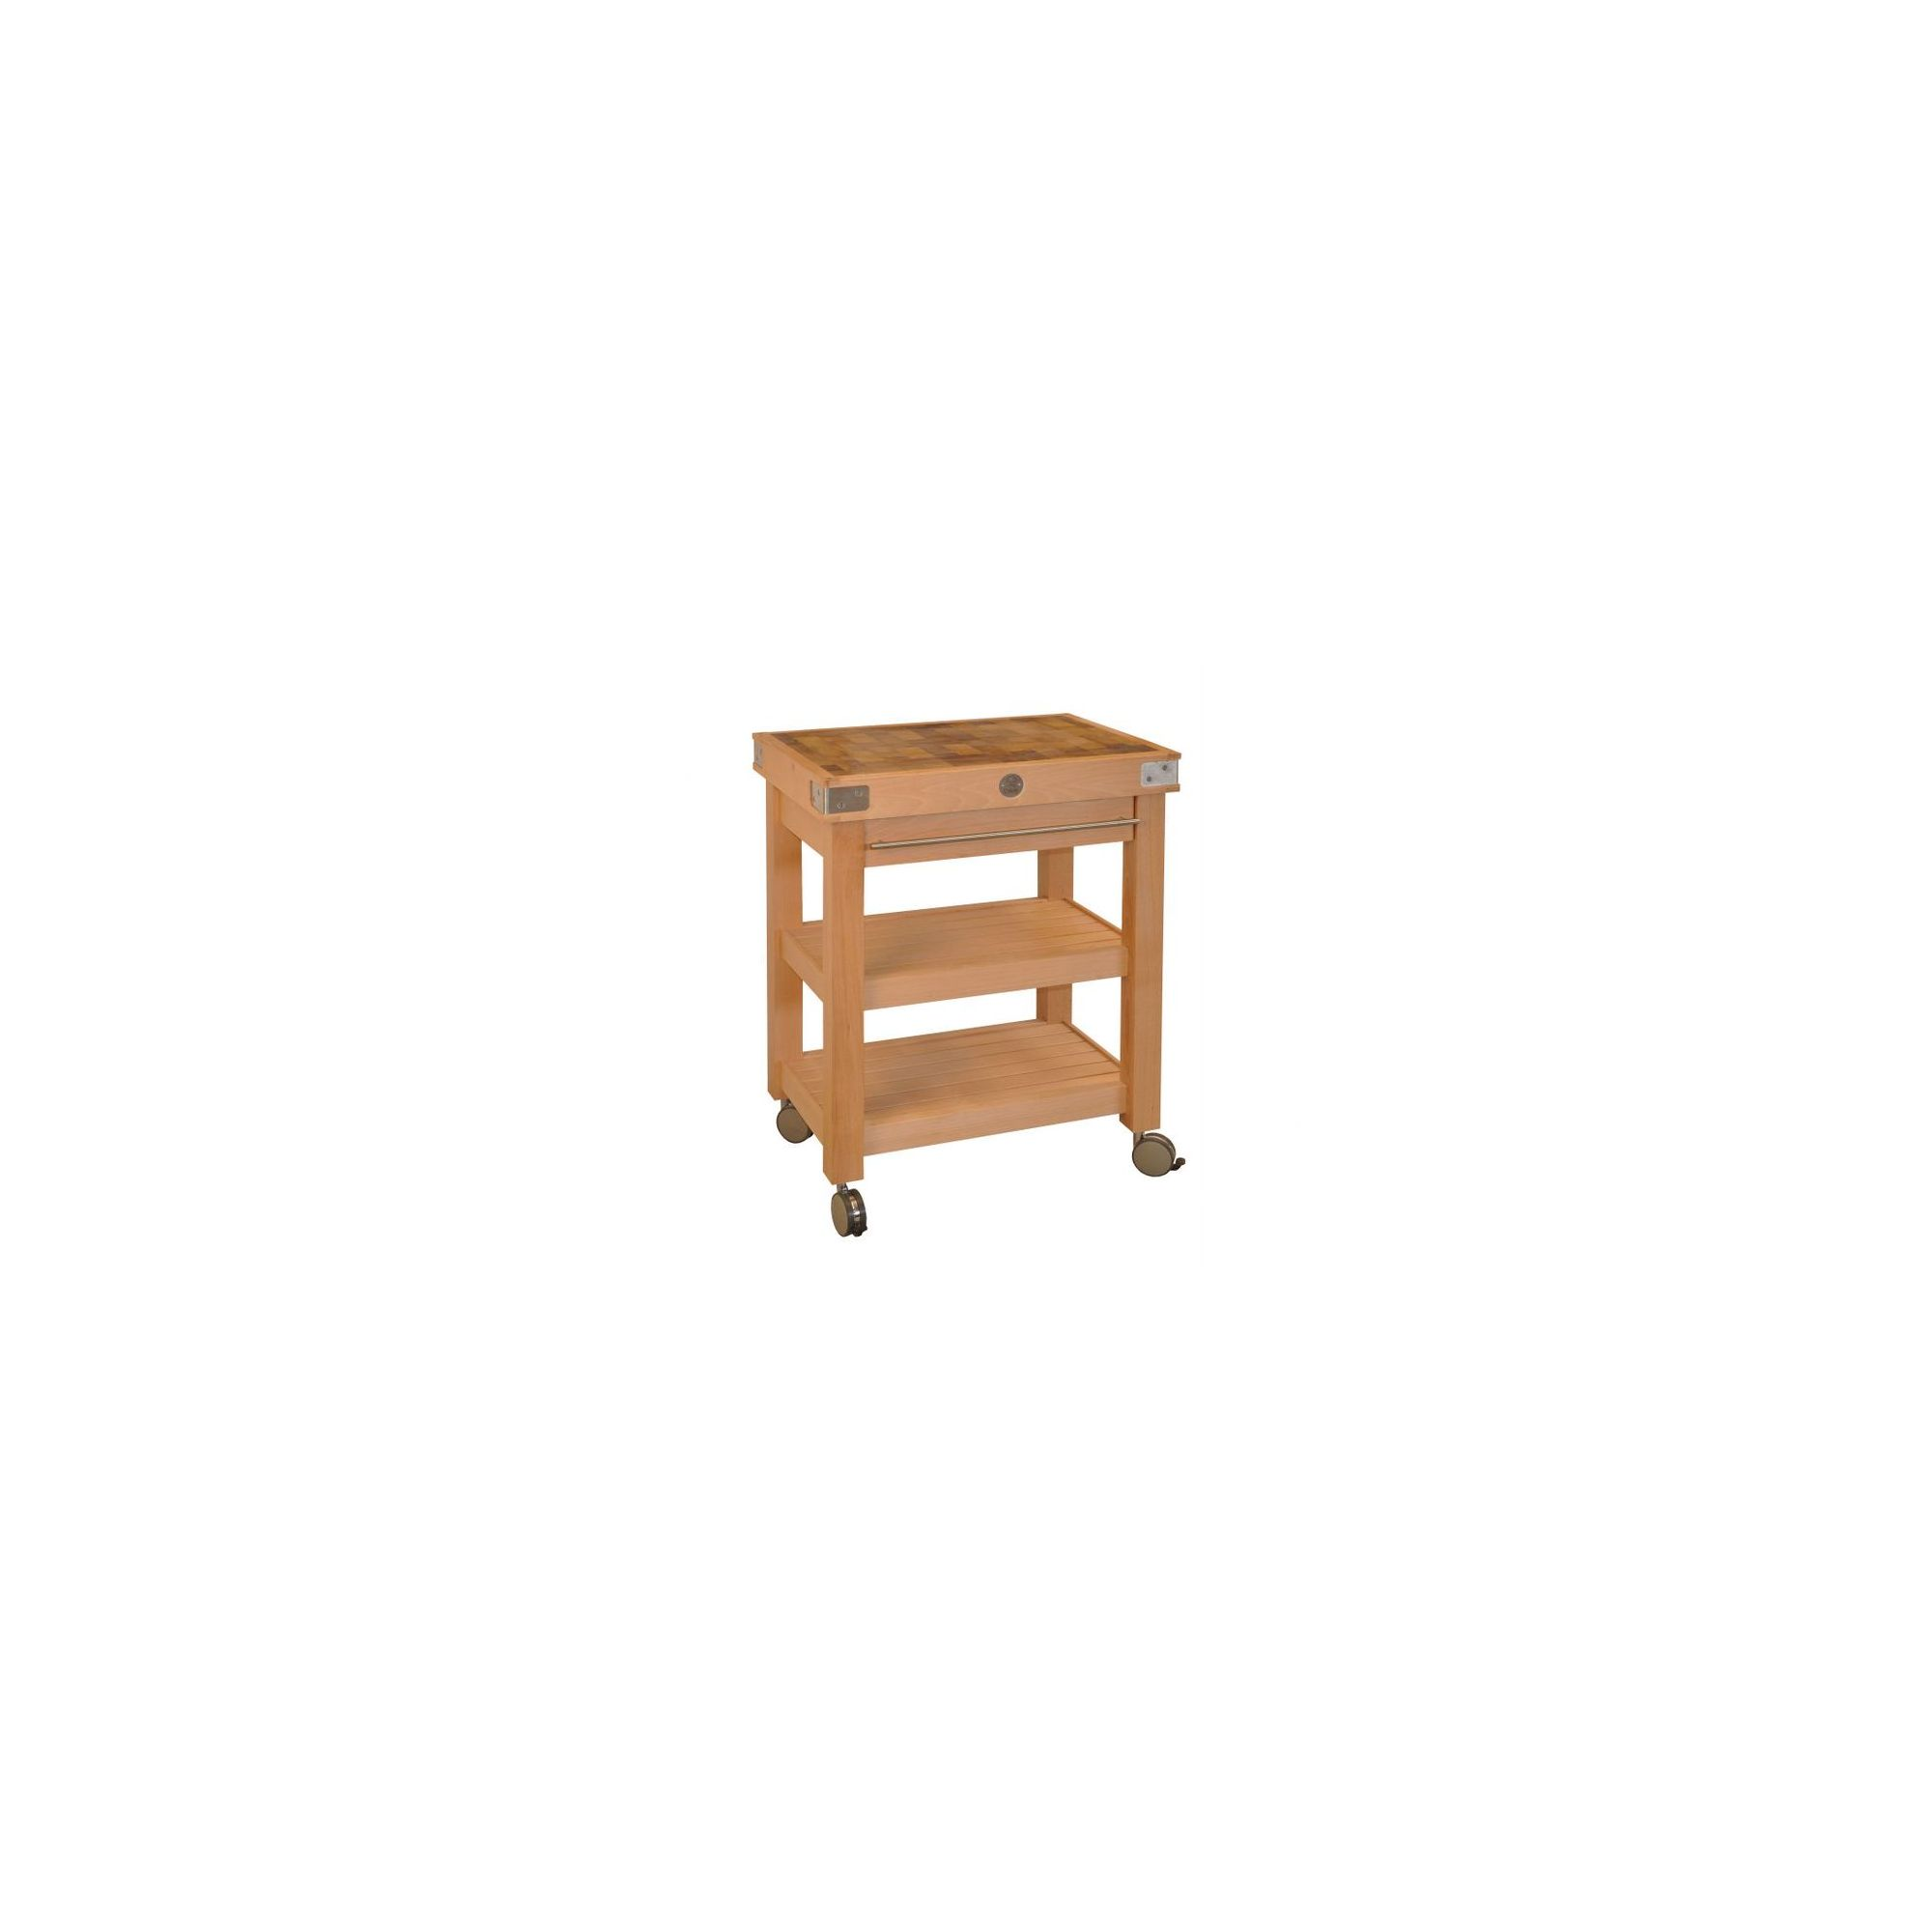 Chabret Double Stages Kitchen Cart - 90cm X 70cm X 50cm at Tesco Direct